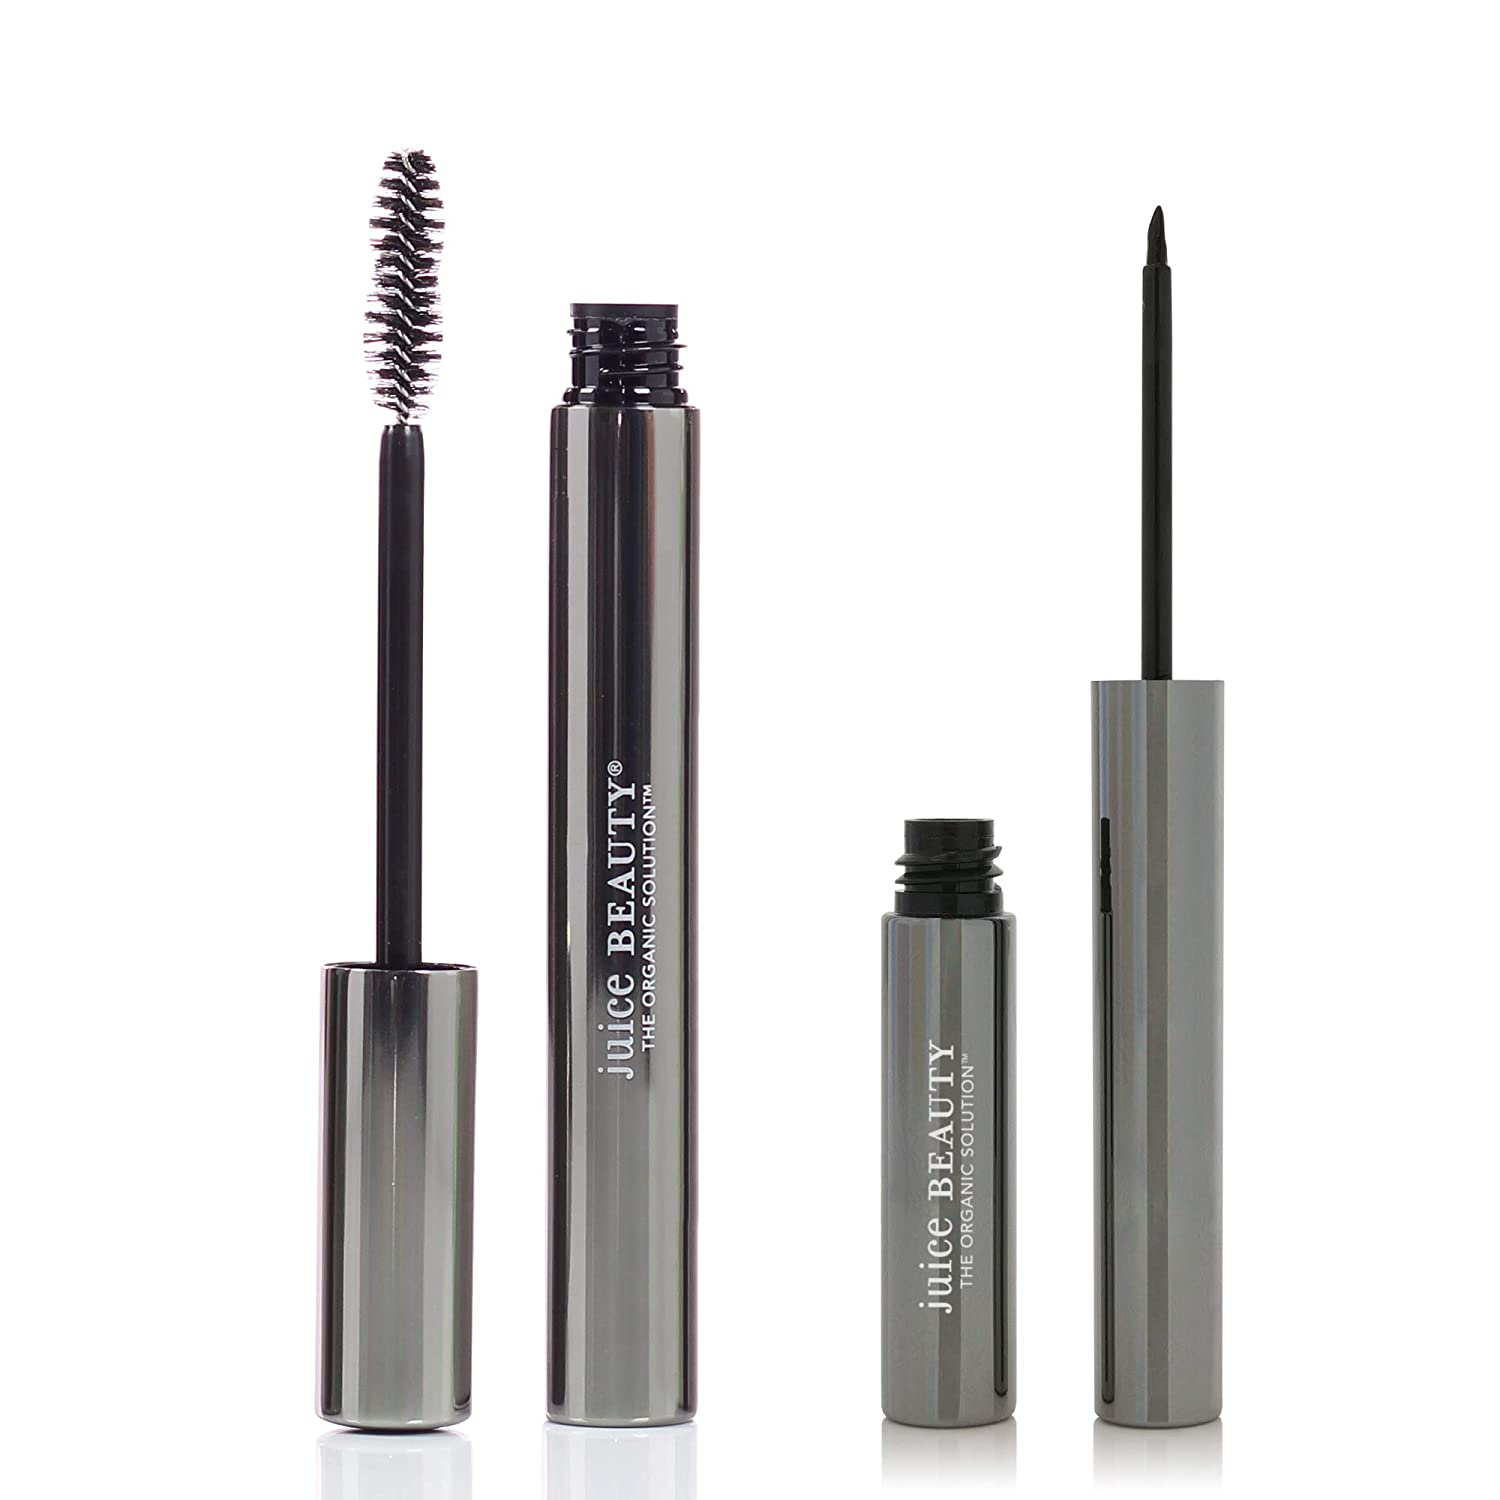 Juice Beauty Phyto-Pigments Eye Kit, Phyto-Pigments Ultra Natural Mascara: Black, Phyto-Pigments Liquid Line & Define: Black